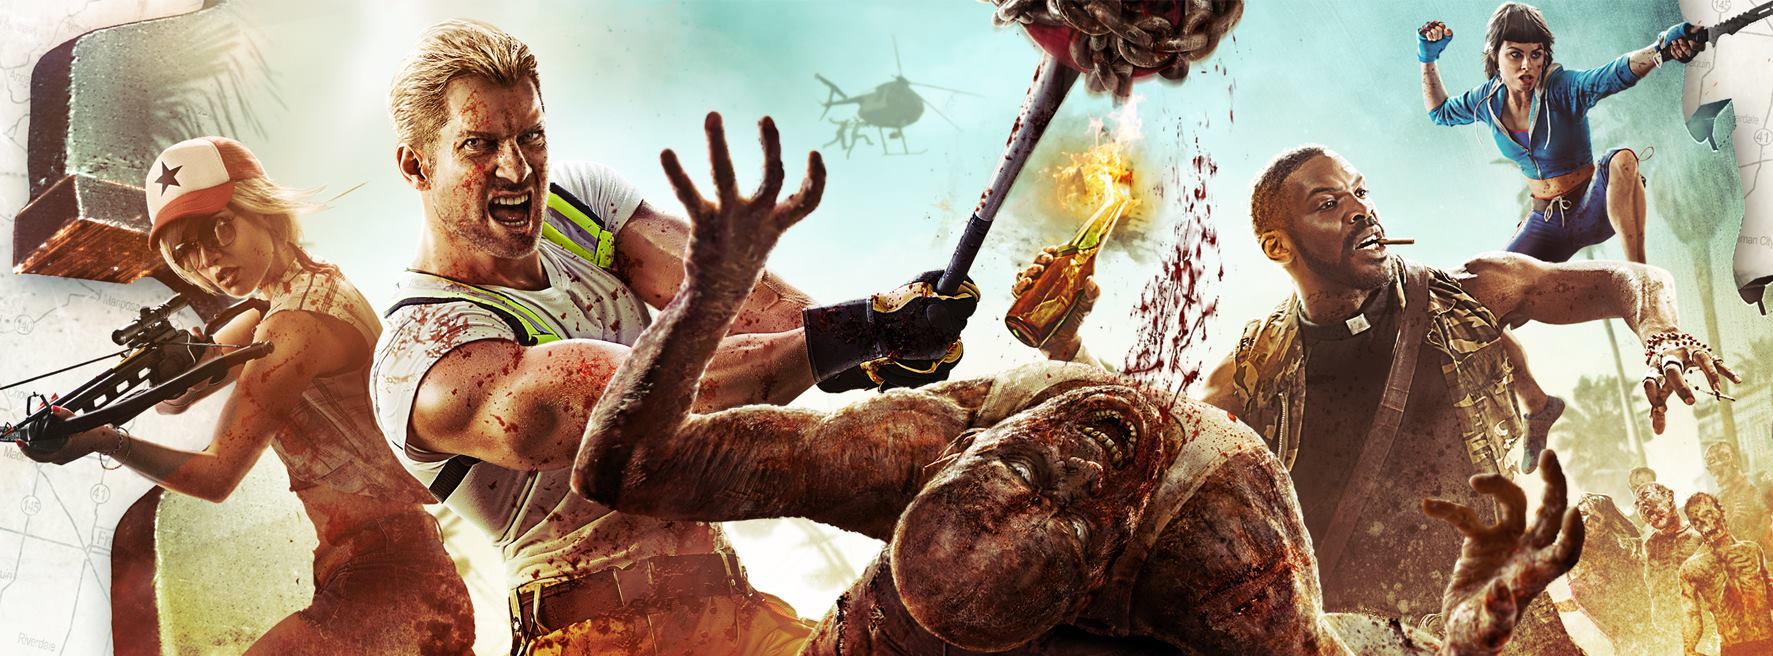 Photo of Yager Developement nu se mai ocupa de Dead Island 2